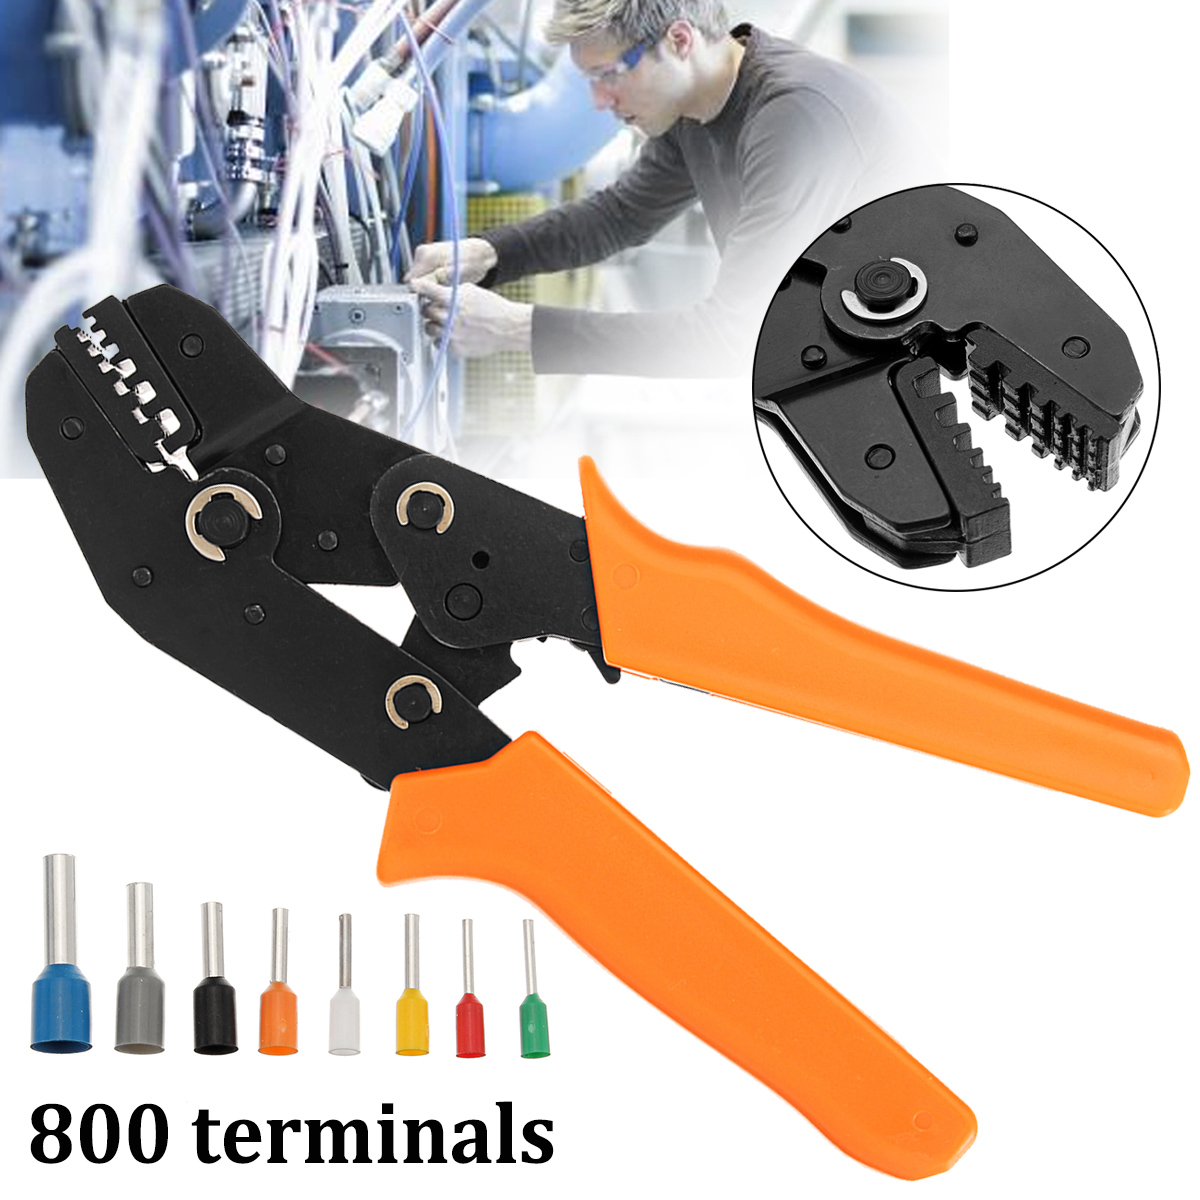 High-quality Electrical Ratchet Crimping Pliers Tool with 800Pcs Wire Stripper Crimper Terminal Kit Hand Tool Sets newacalox multifunction self adjustable terminal tool kit wire stripper crimping pliers wire crimp screwdriver with tool bag